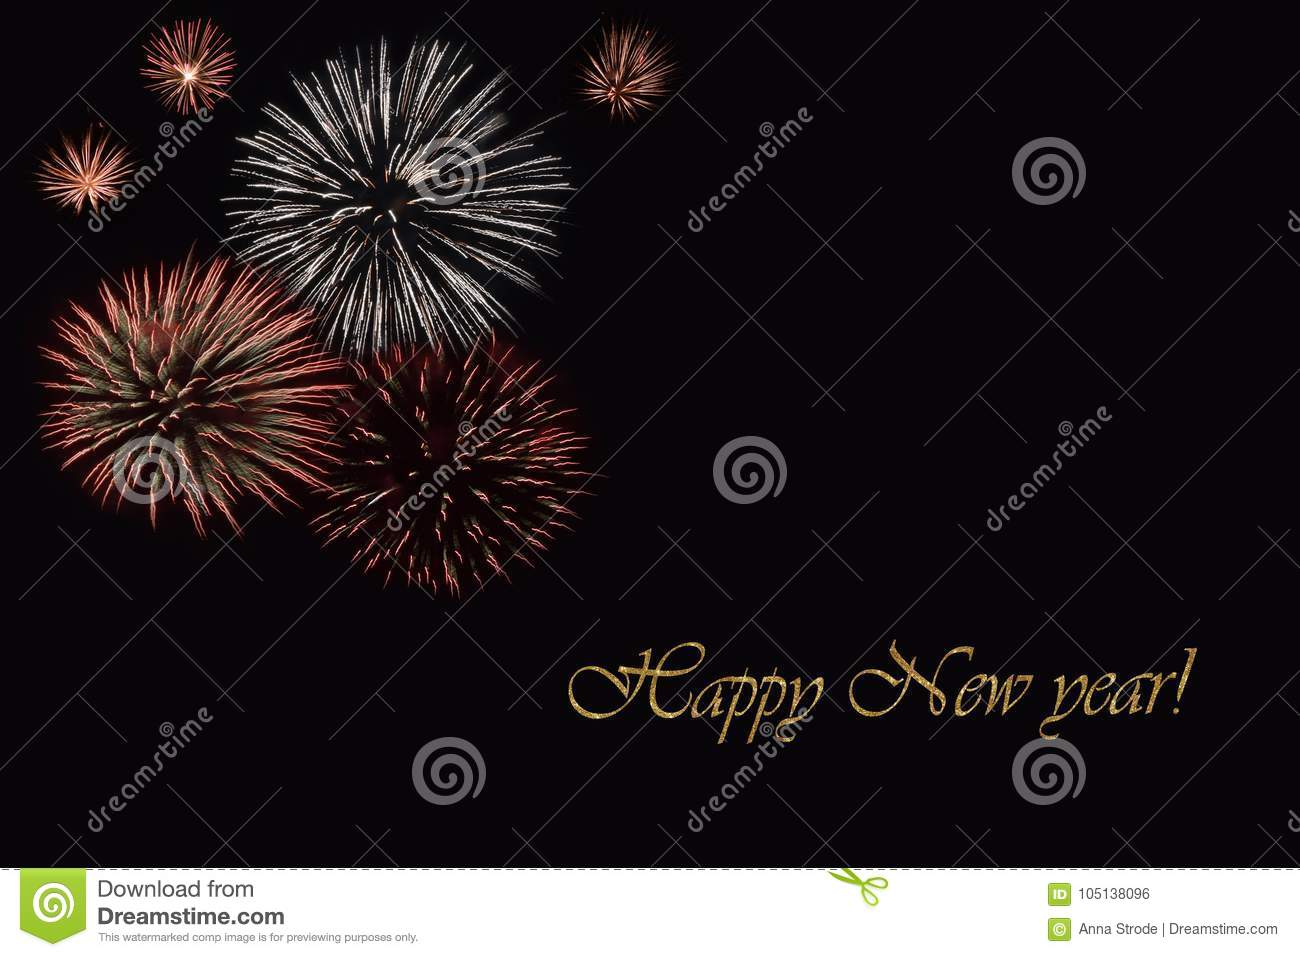 Fireworks On A Dark Background And A Text `Happy New Year